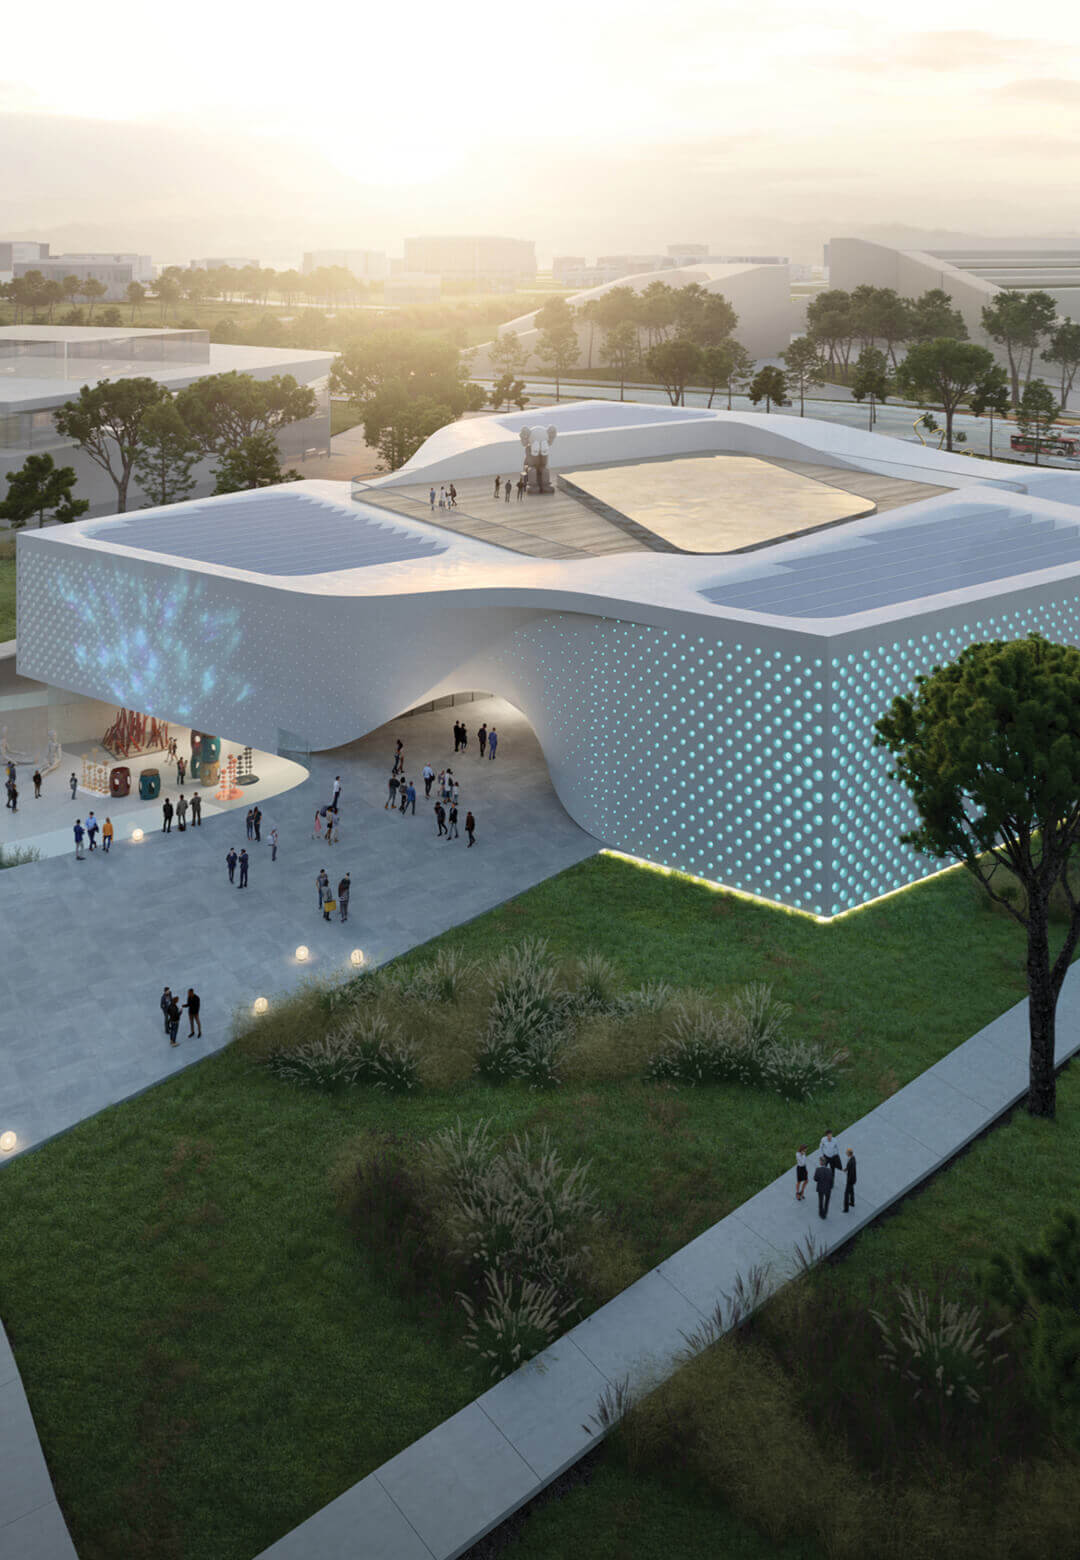 Visualisation of Chungnam Art Museum in South Korea: an immersive and sustainable cultural centre that aims to provide a unique and interactive experience for its users | Chungnam Art Museum | UNStudio | STIRworld